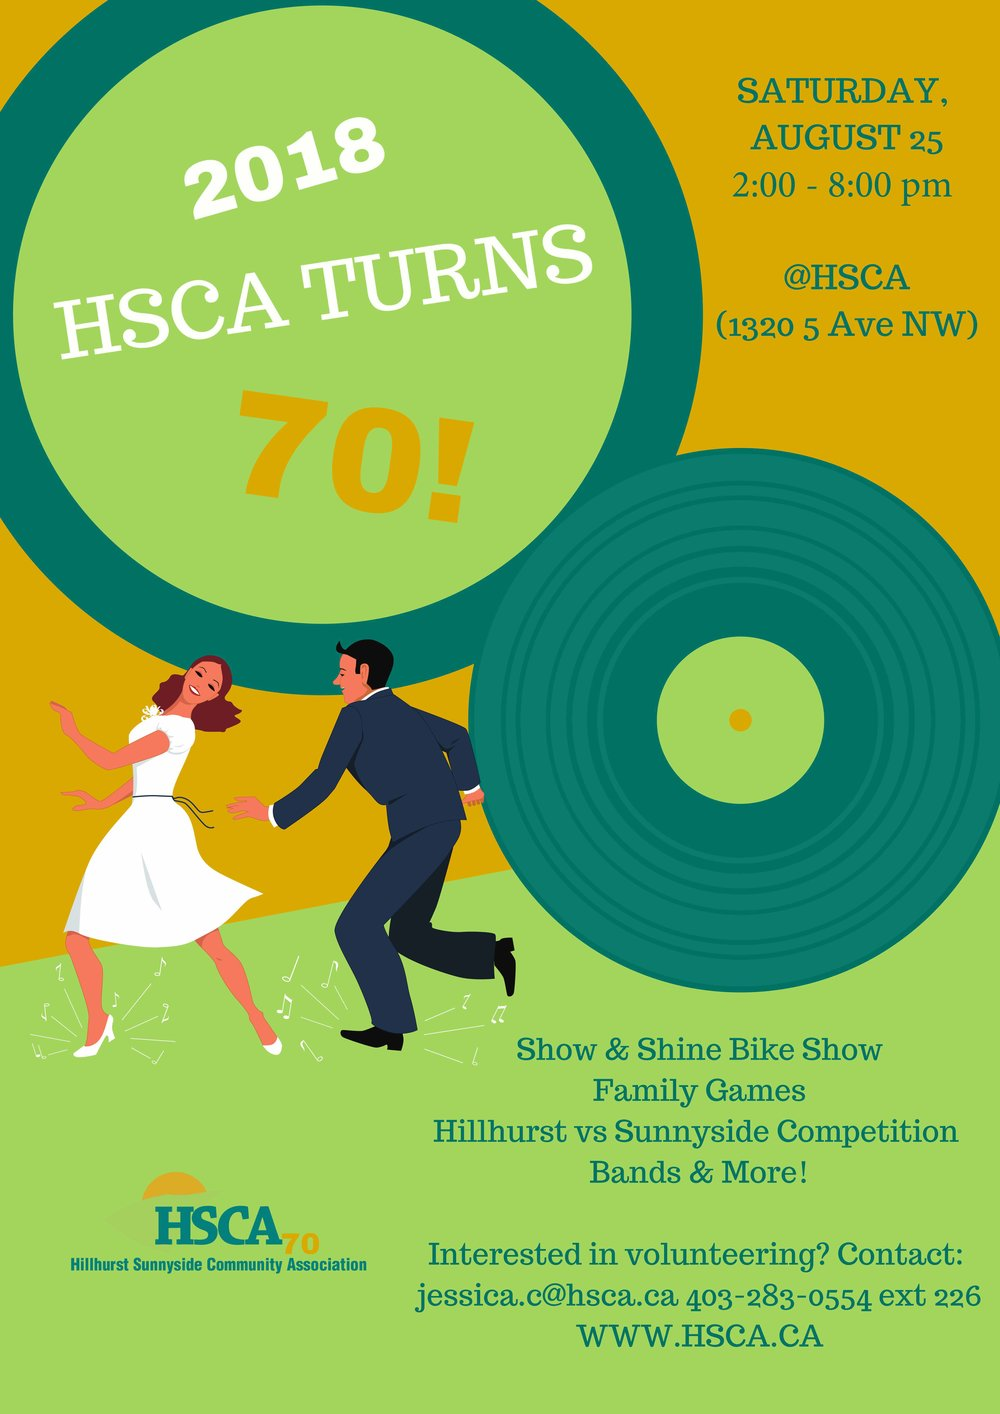 HSCA's 70th Anniversary copy.jpg